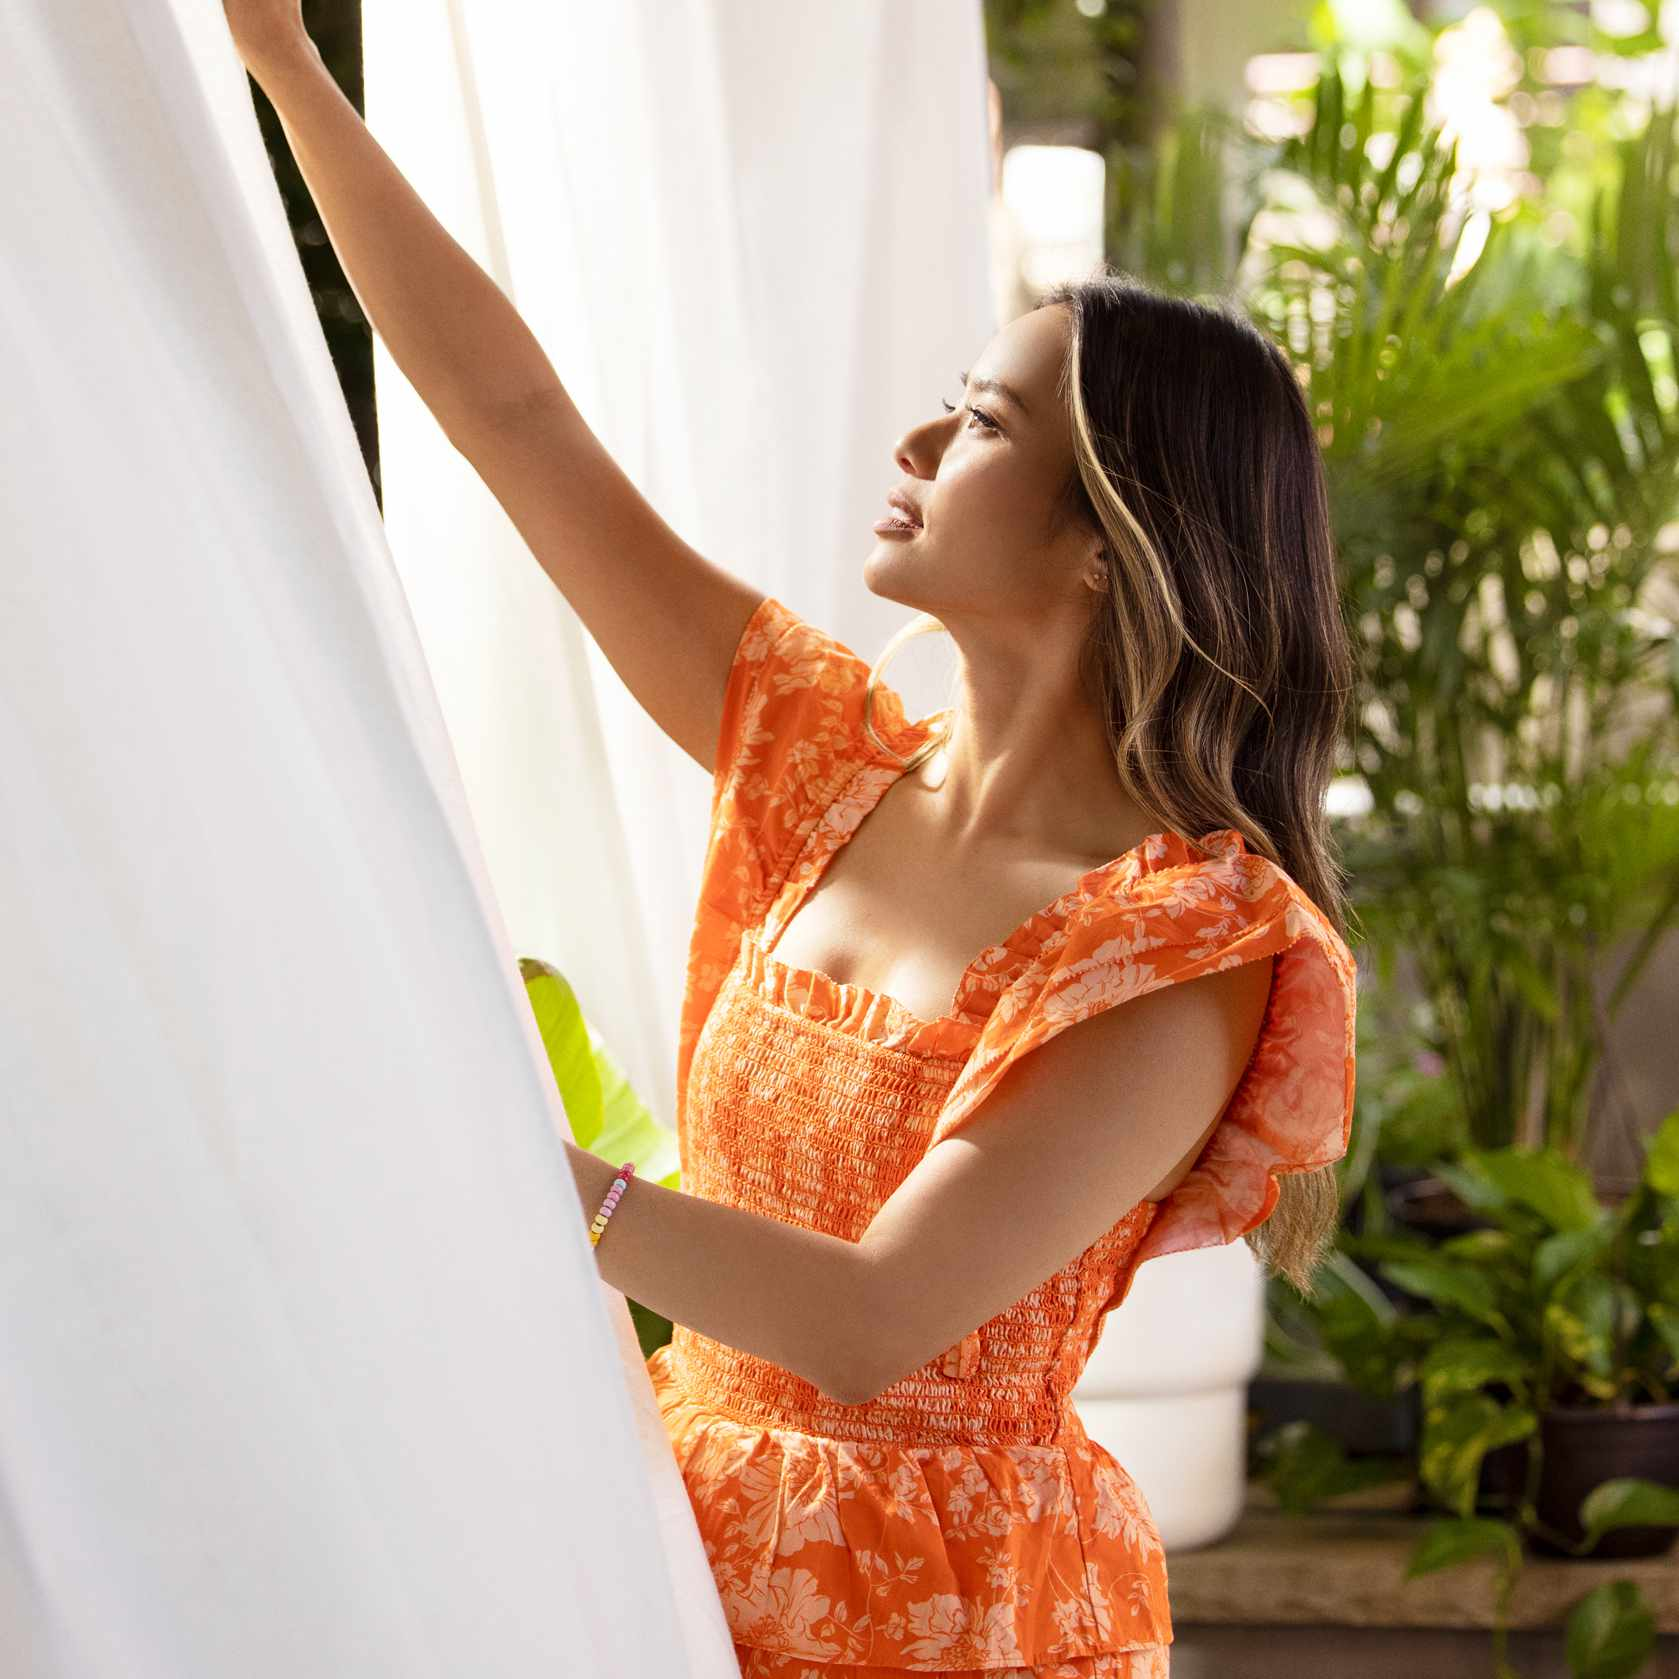 Jamie Chung arranges drapes in her Brooklyn outdoor space